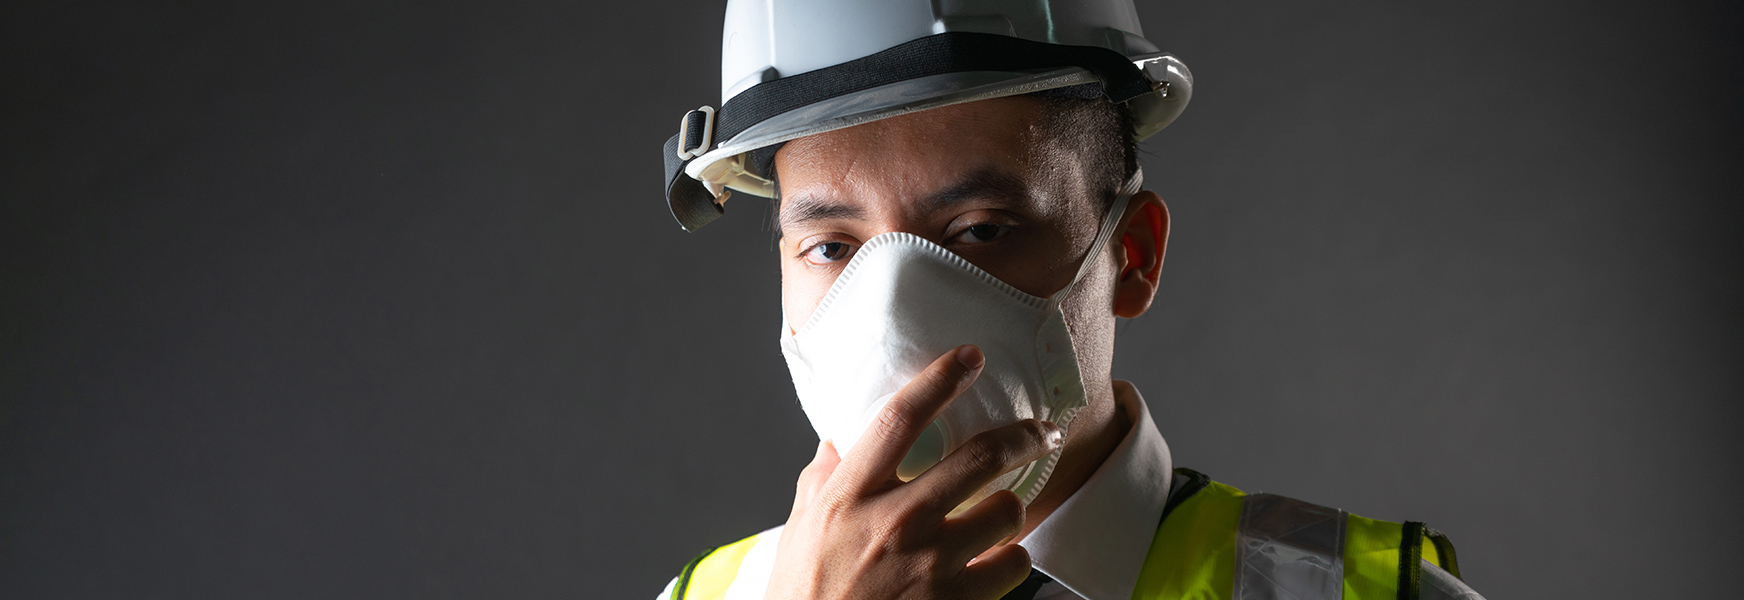 Male construction worker wearing a face mask